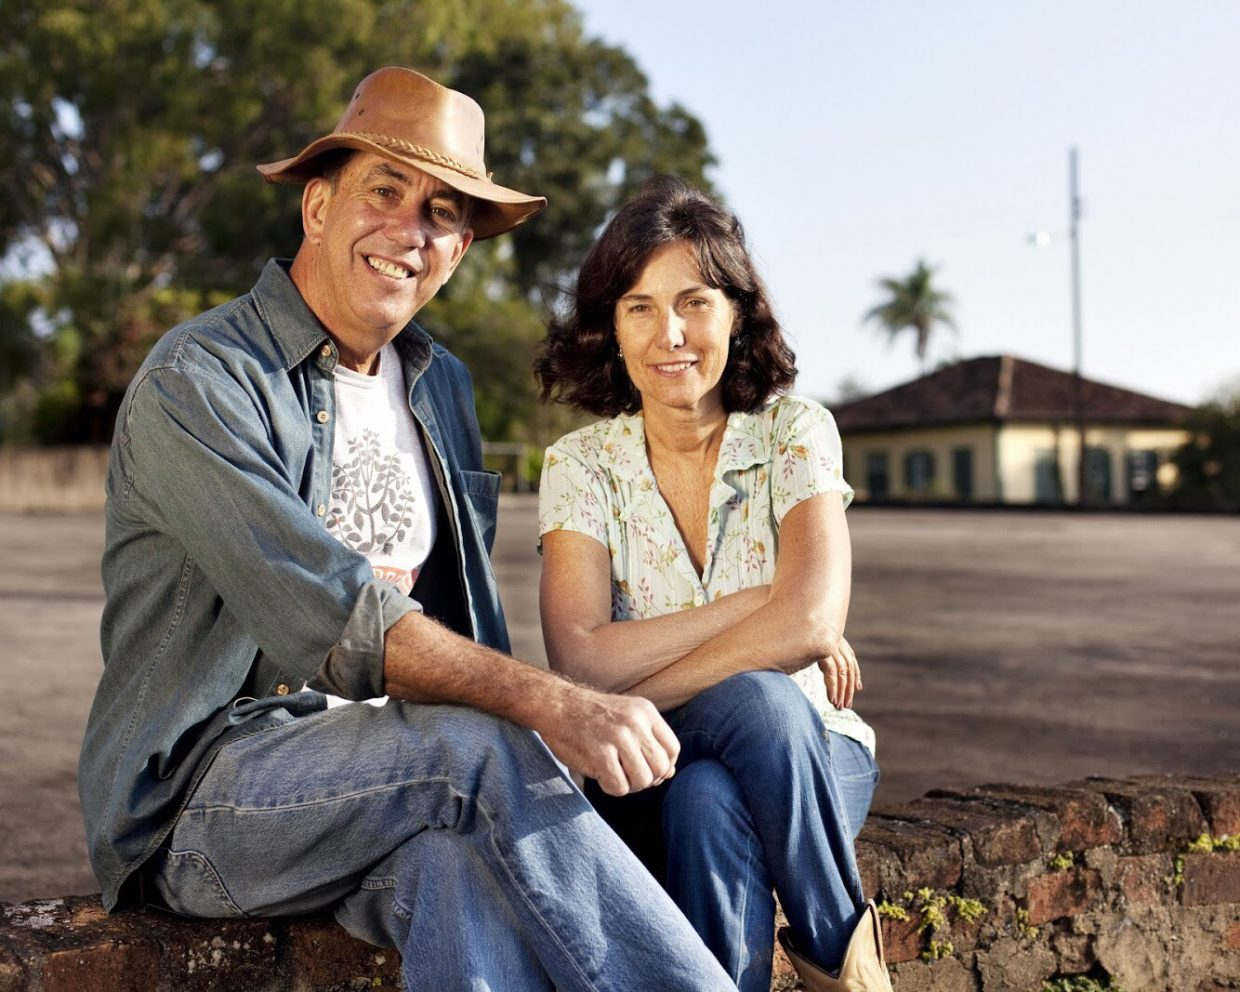 Marcos Croce and Silvia Barretto at Fazenda Amiental Fortaleza.